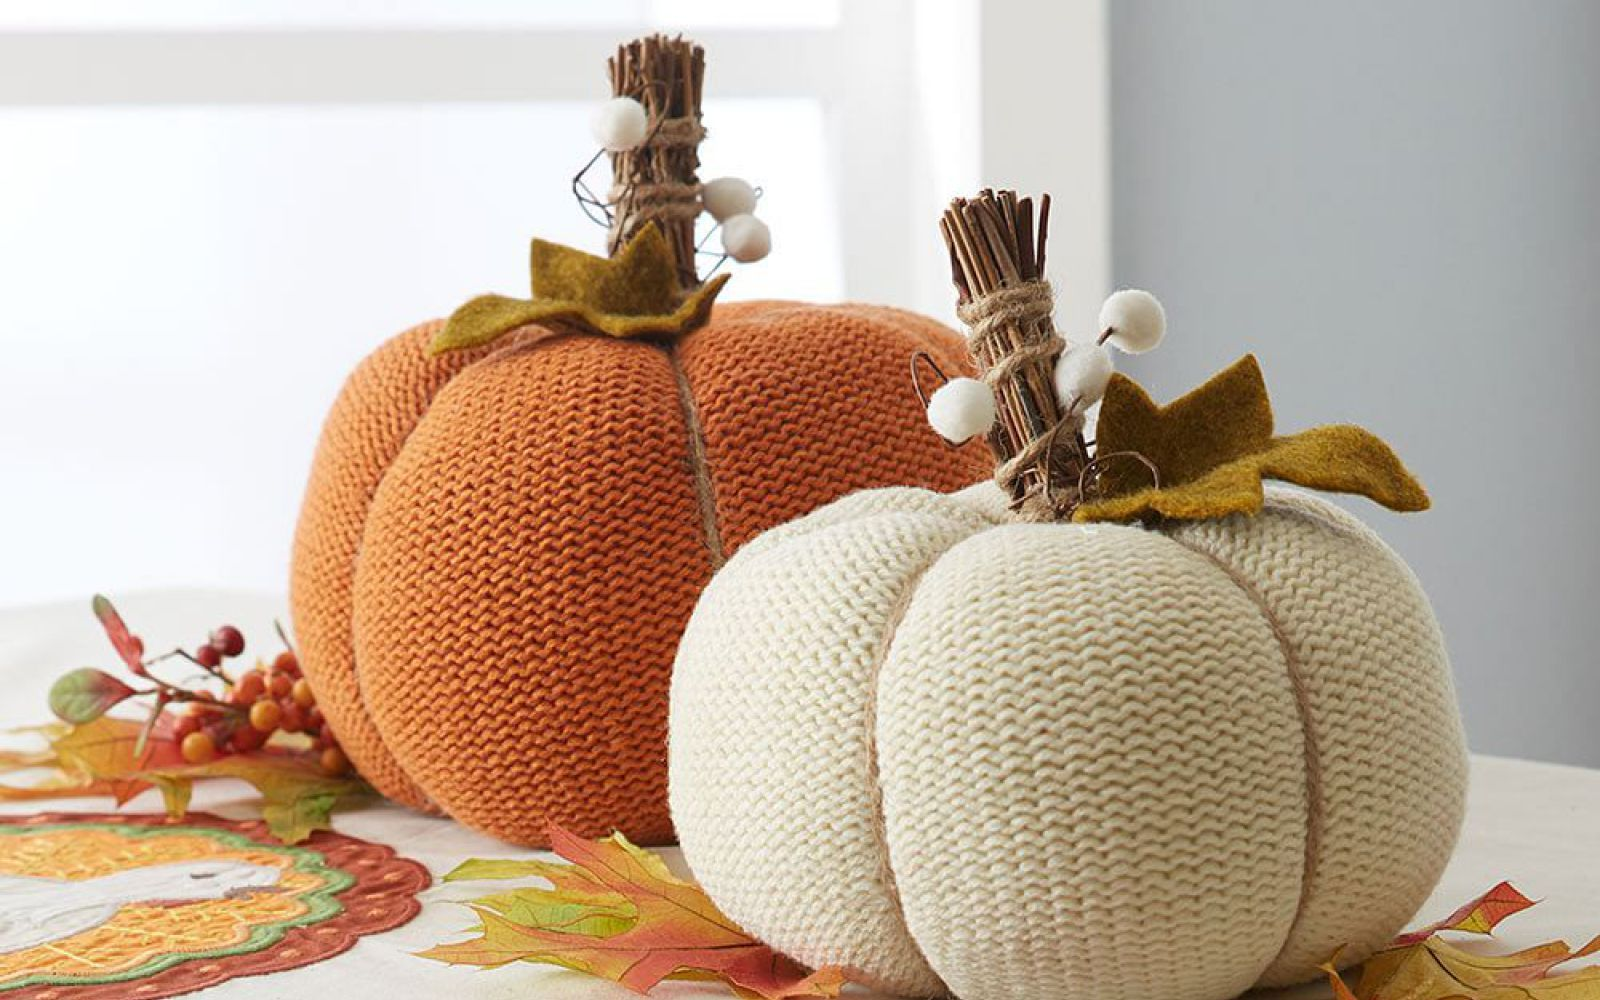 .potterybarn makes a (super cute) case for decor at the kids' table this Thanksgiving  https://t.co/DjVE5C0qXN) https://t.co/UrwcKfxPrk Call Michael Daugustinis P.A. Realtor your Coldwell Banker Real Estate Professional at (904) 342-2345